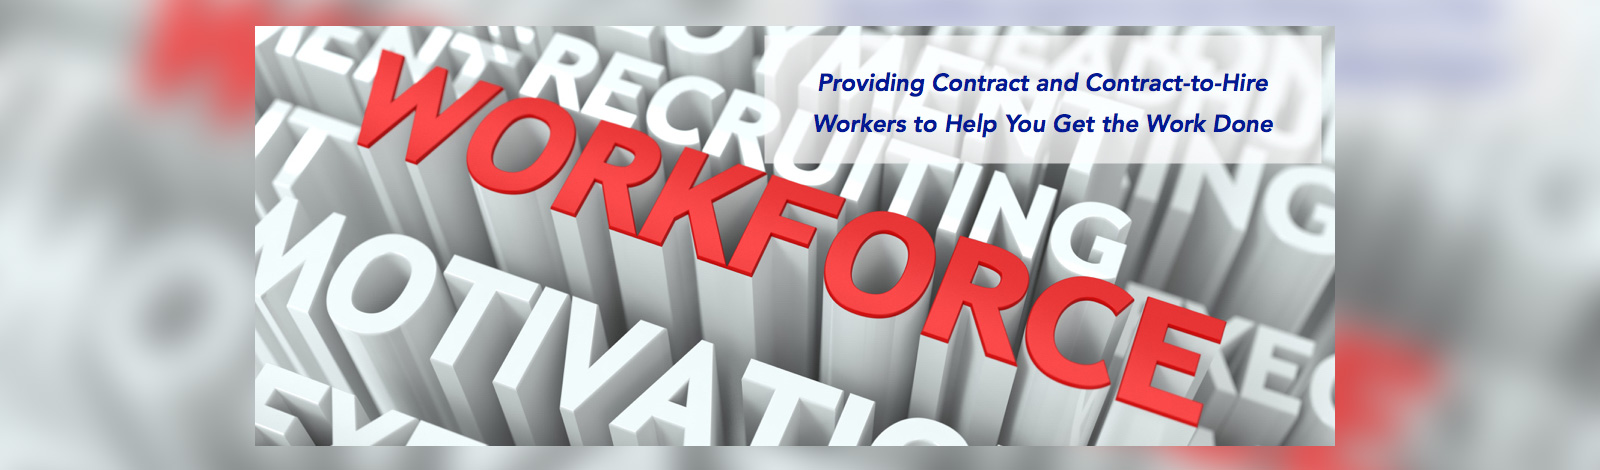 Providing Contract and Contract-to-Hire Workers to Help You Get the JWork Done